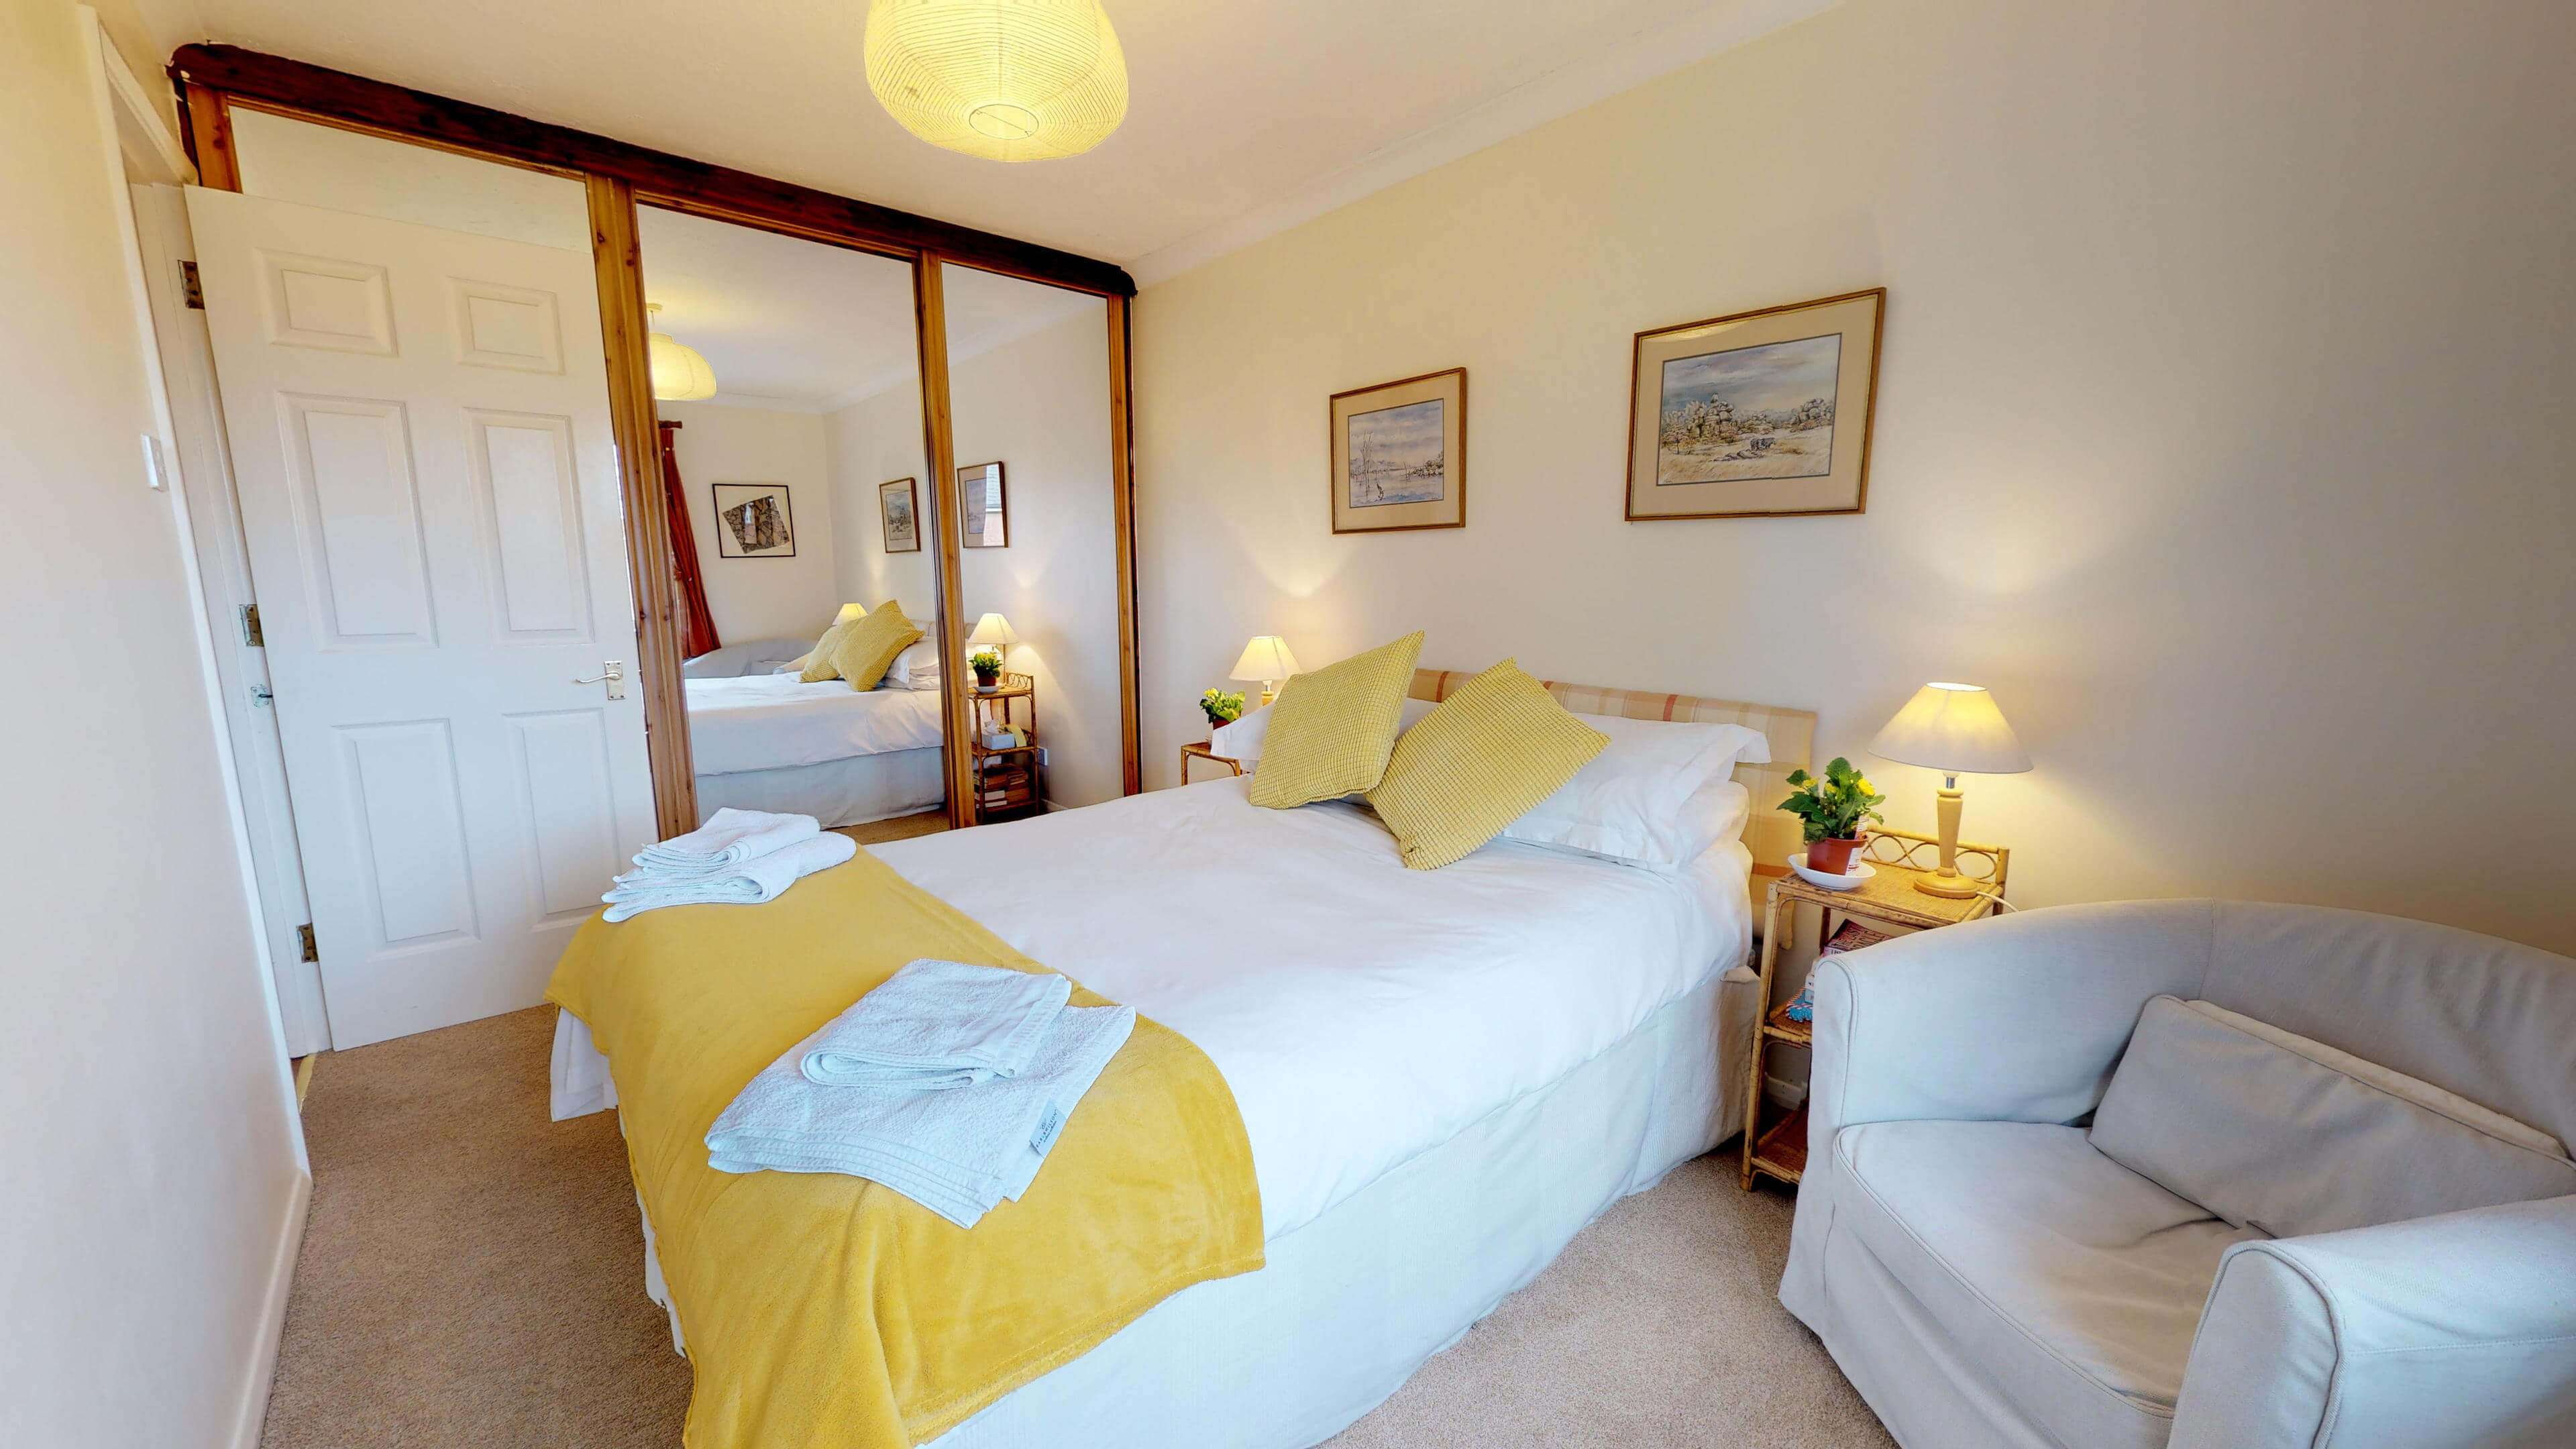 Millbank Oxford City Centre Short Stay Apartment Sleeps 4 Double Bedroom Bed